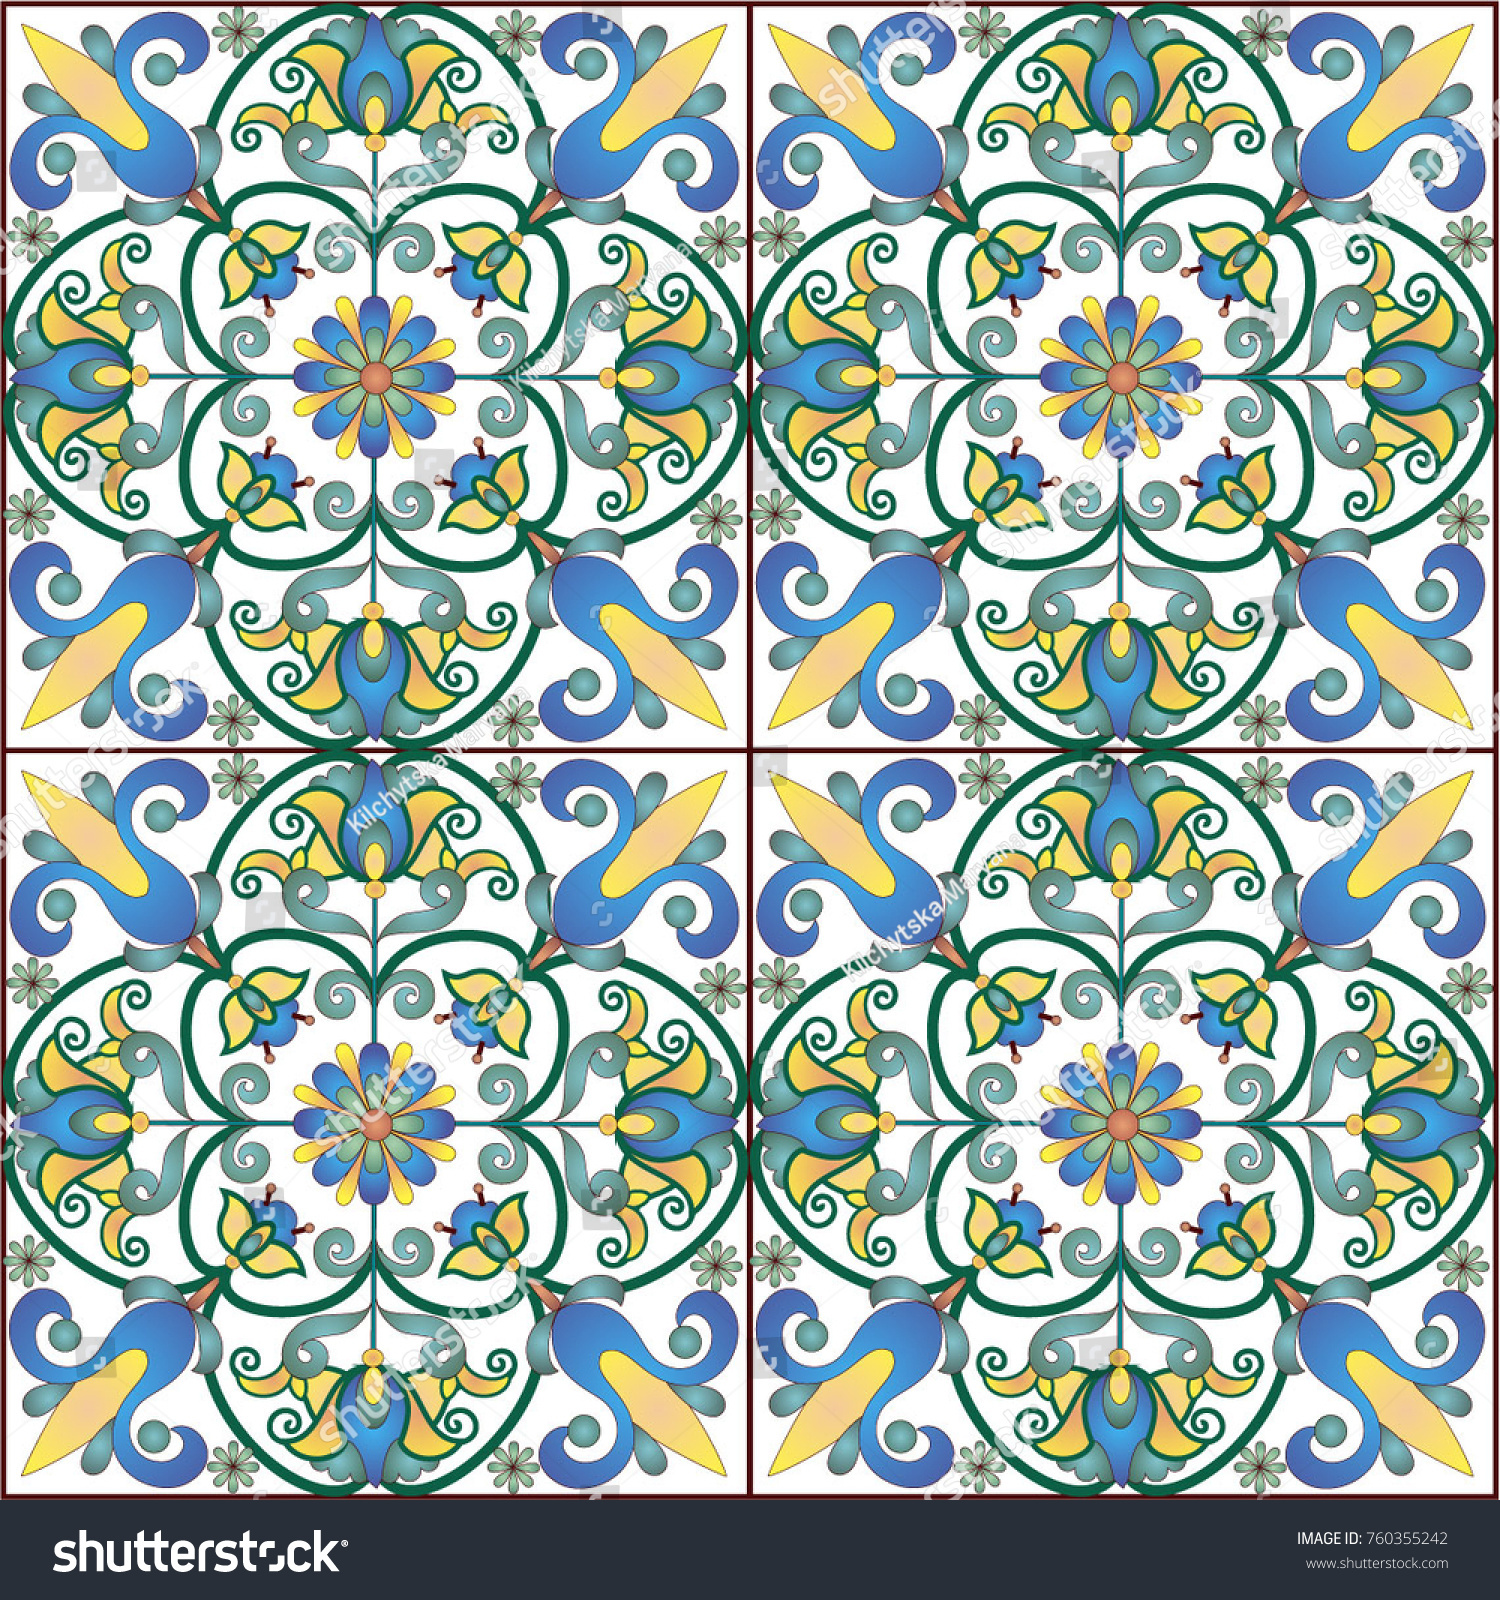 Old Ceramic Tile Wall Patterns Texture Stock Vector (Royalty Free ...